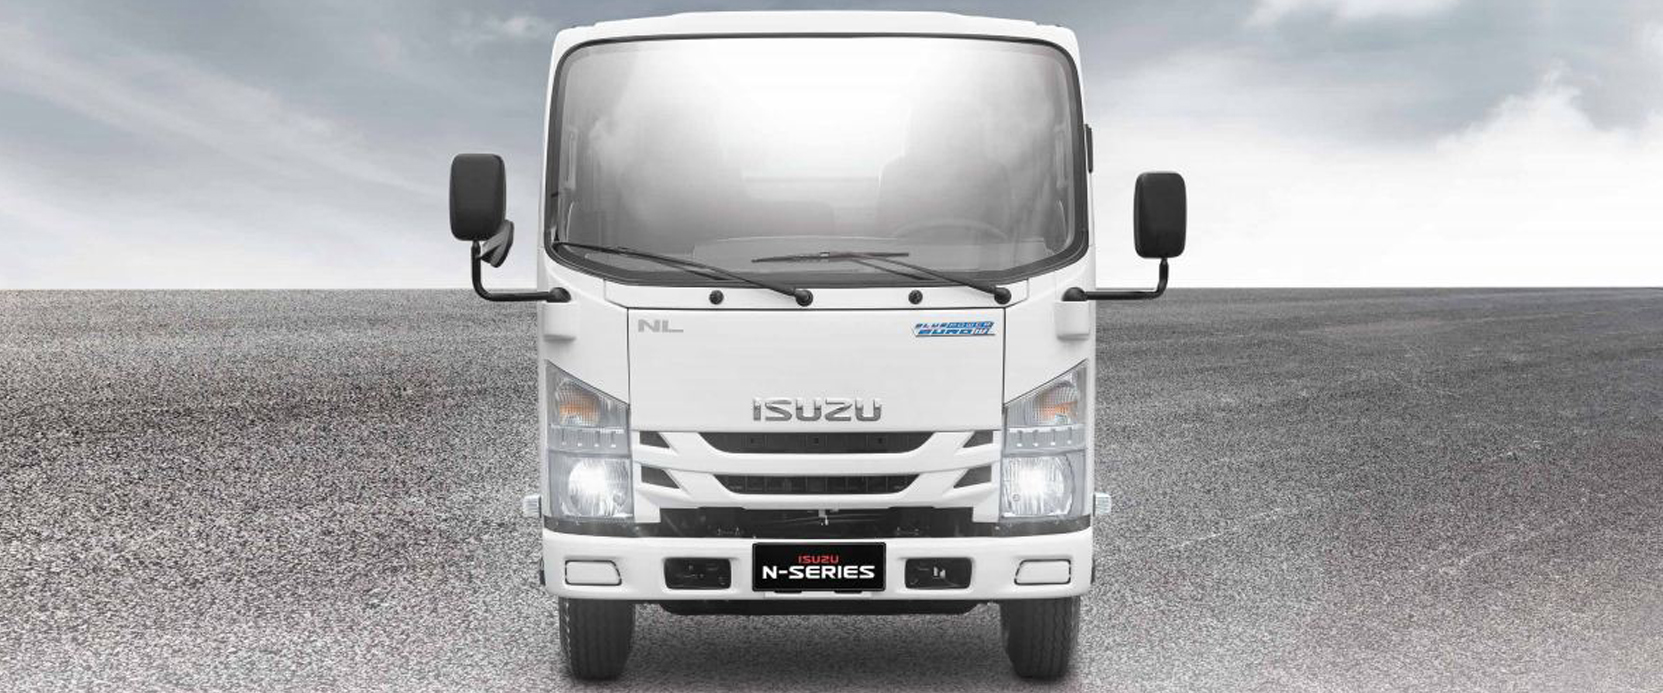 Isuzu Auto Dealer | AC Automotive | Isuzu trucks Philippines N